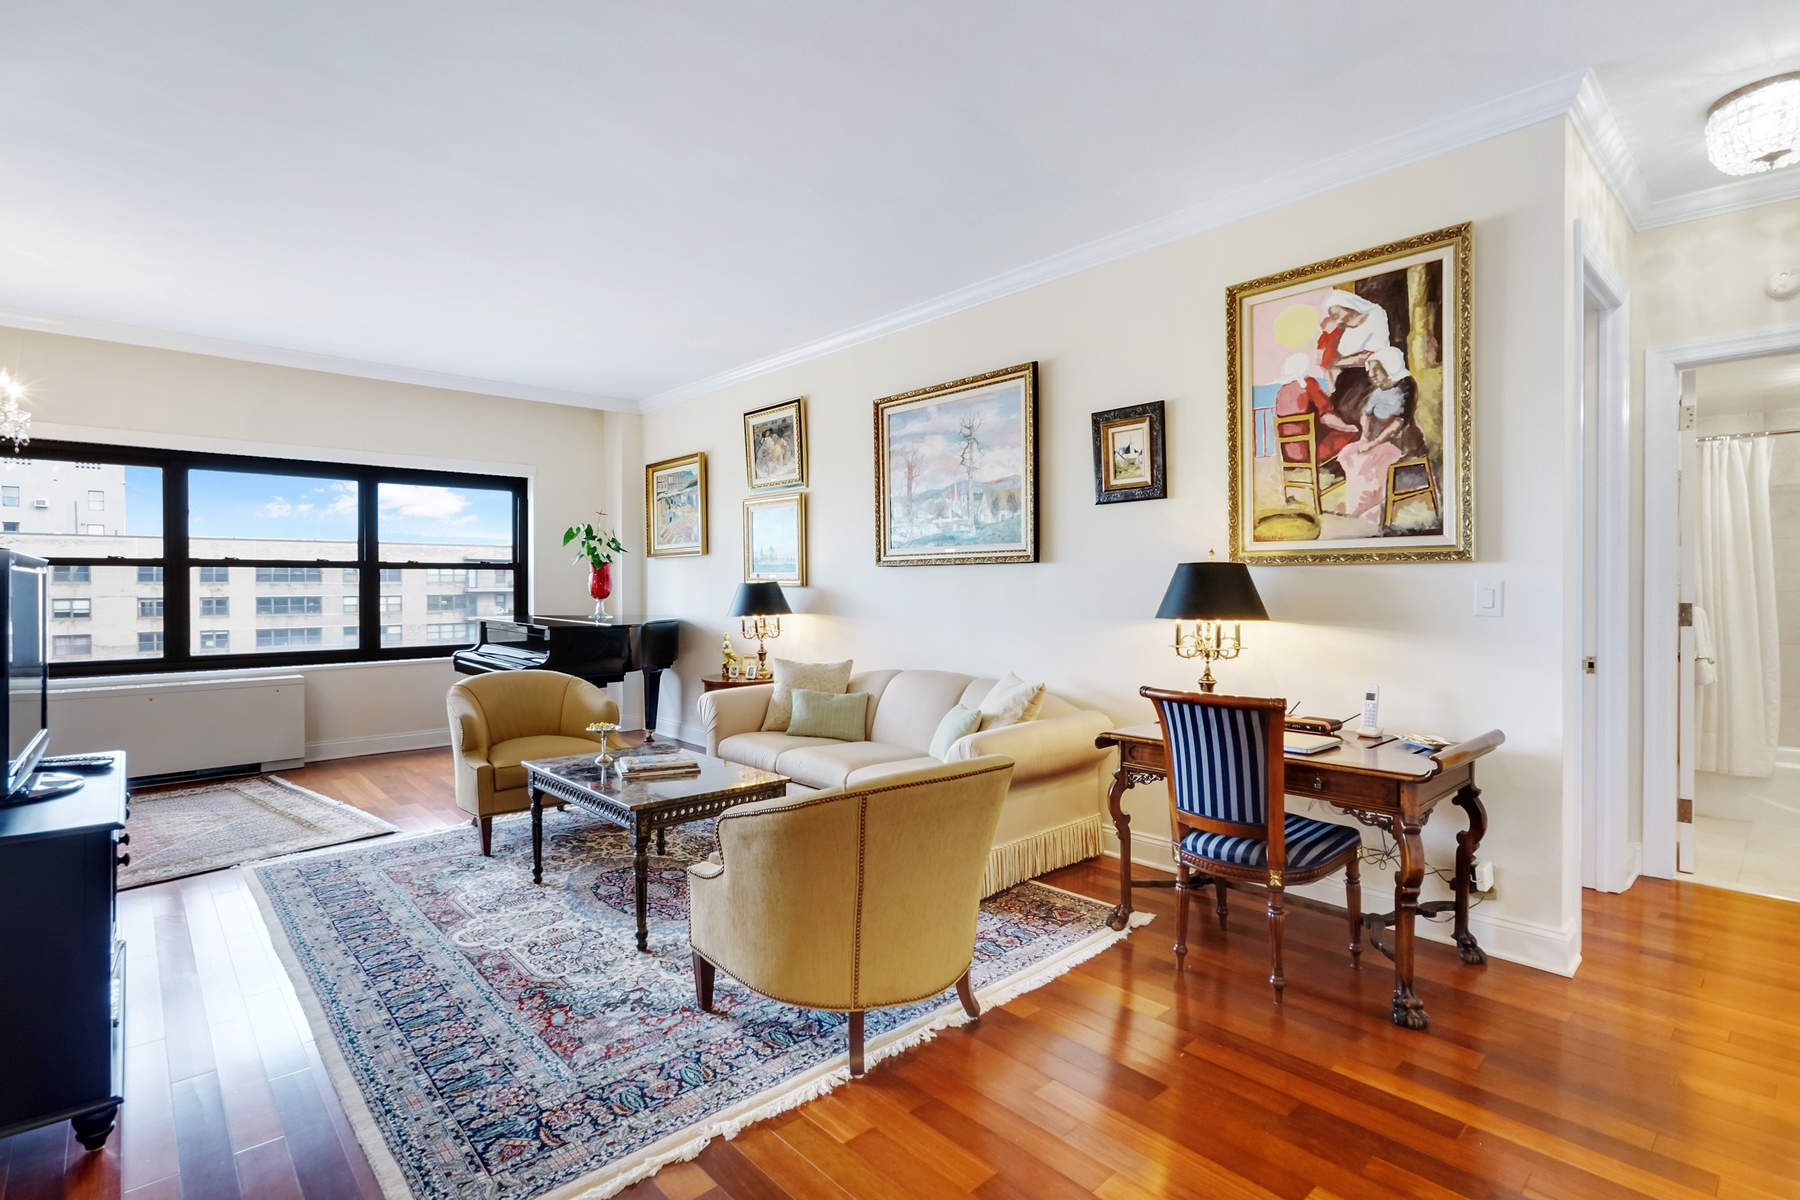 Co-op for Sale at 150 West End Avenue, Apt. 30H 150 West End Avenue Apt 30H, New York, New York, 10023 United States